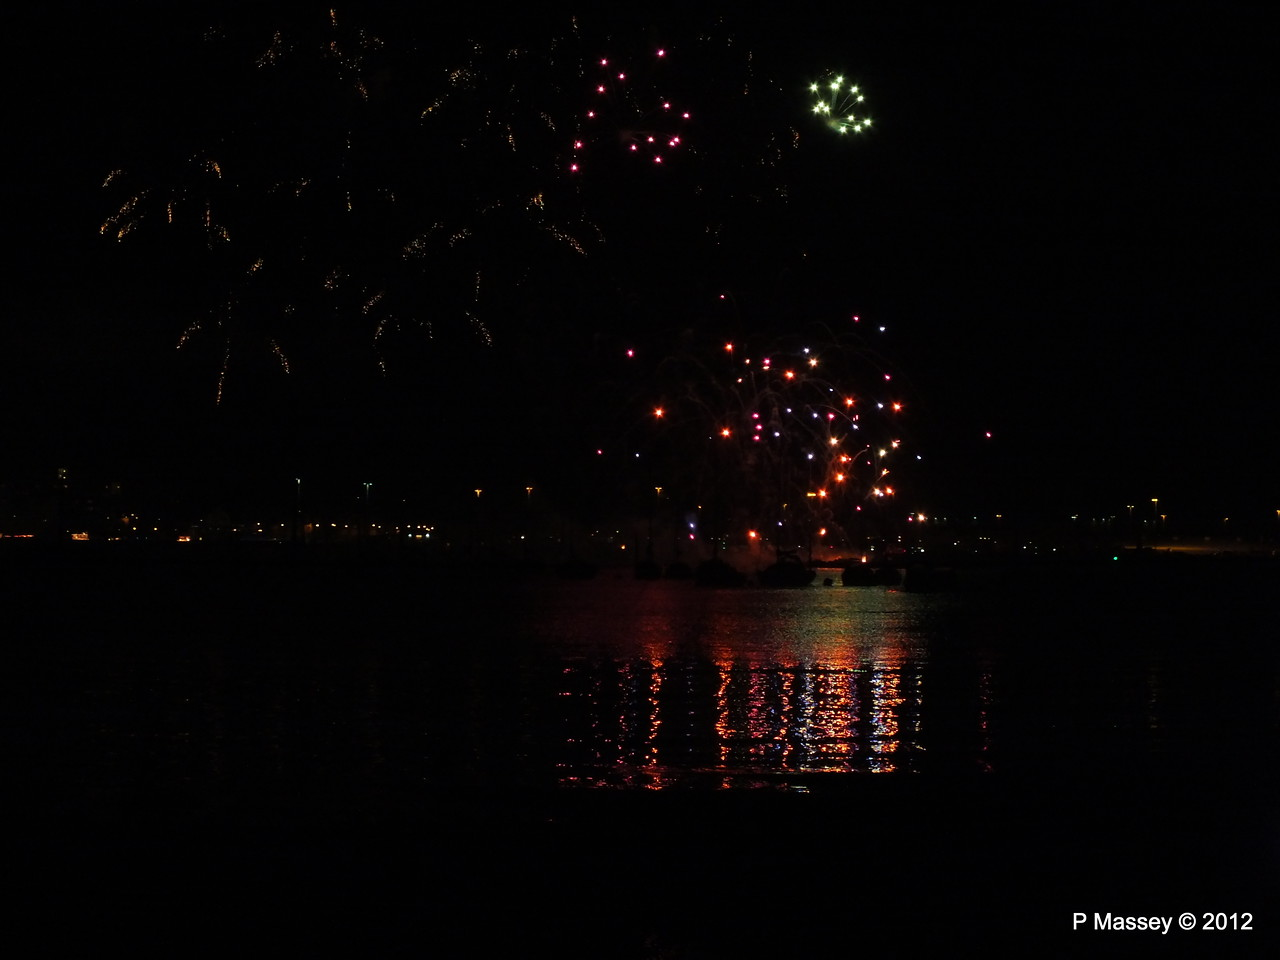 Fireworks off Mayflower Park PDM 03-11-2012 20-51-56